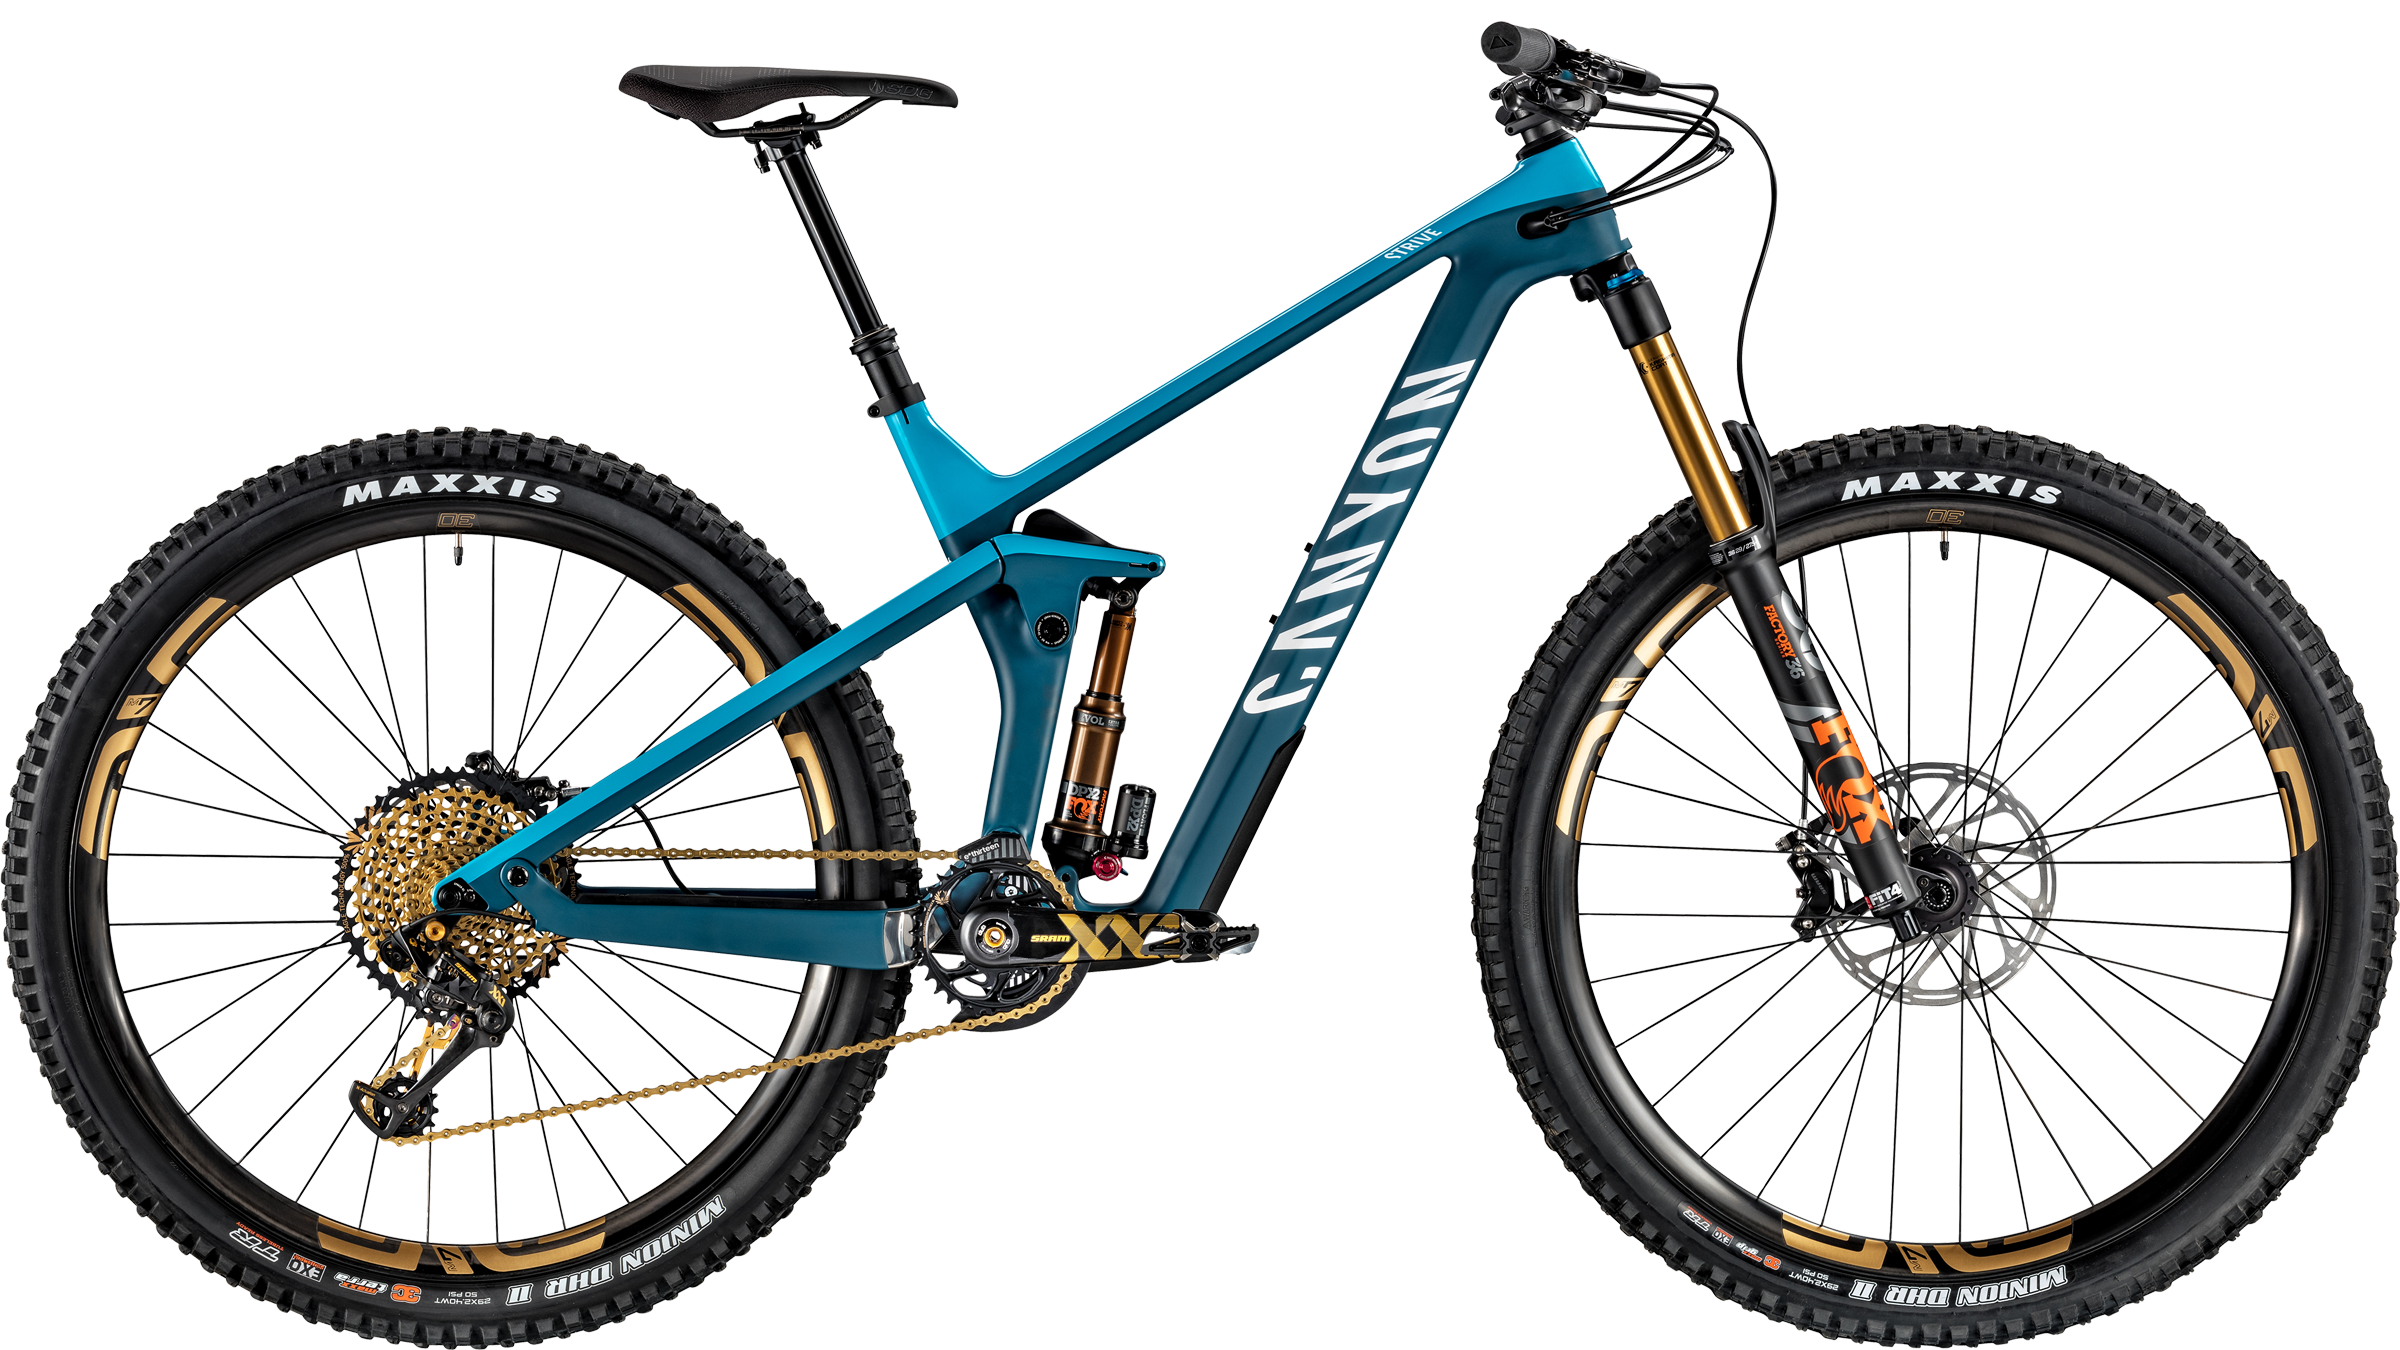 Strive CFR 9.0 LTD | Mountainbikes